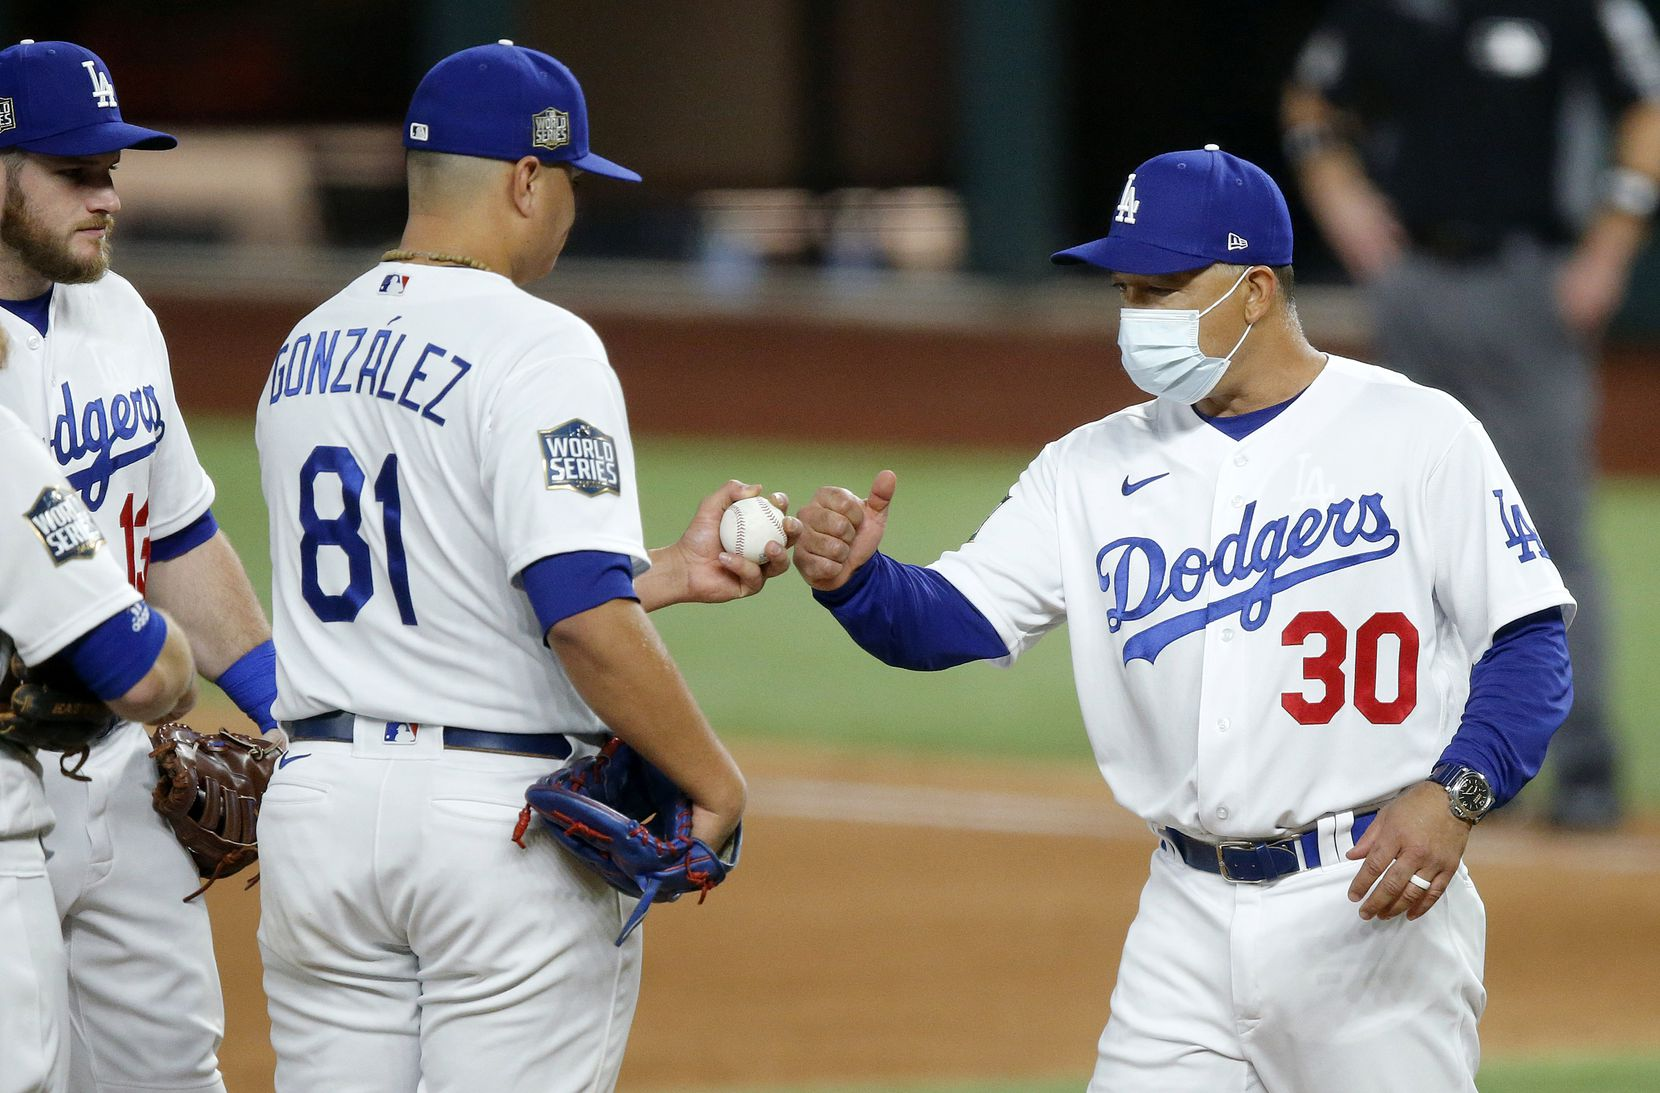 Los Angeles Dodgers manger Dave Roberts gives relief pitcher Victor Gonzalez (81) a fist bump as he pulls him during the fourth inning against the Tampa Bay Rays in Game 2 of the World Series at Globe Life Field in Arlington, Wednesday, October 21, 2020. (Tom Fox/The Dallas Morning News)